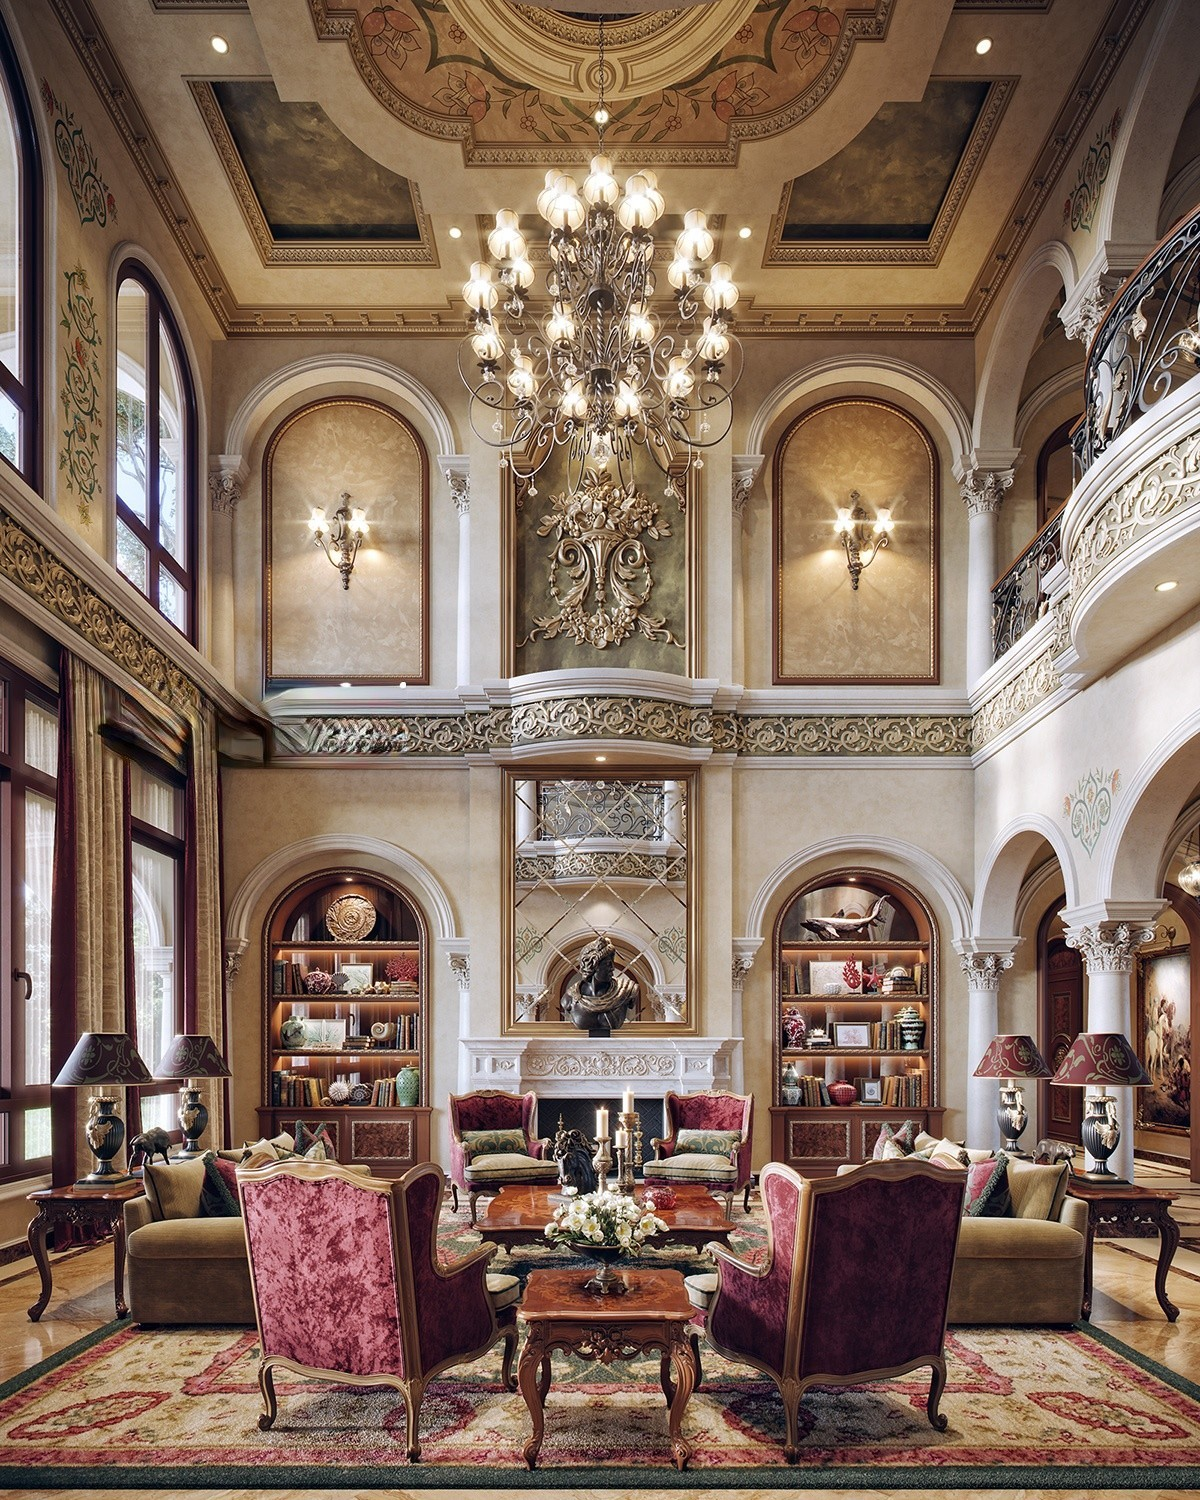 Best Interior Design and Fit Out Companies in Qatar- Whyte Concepts